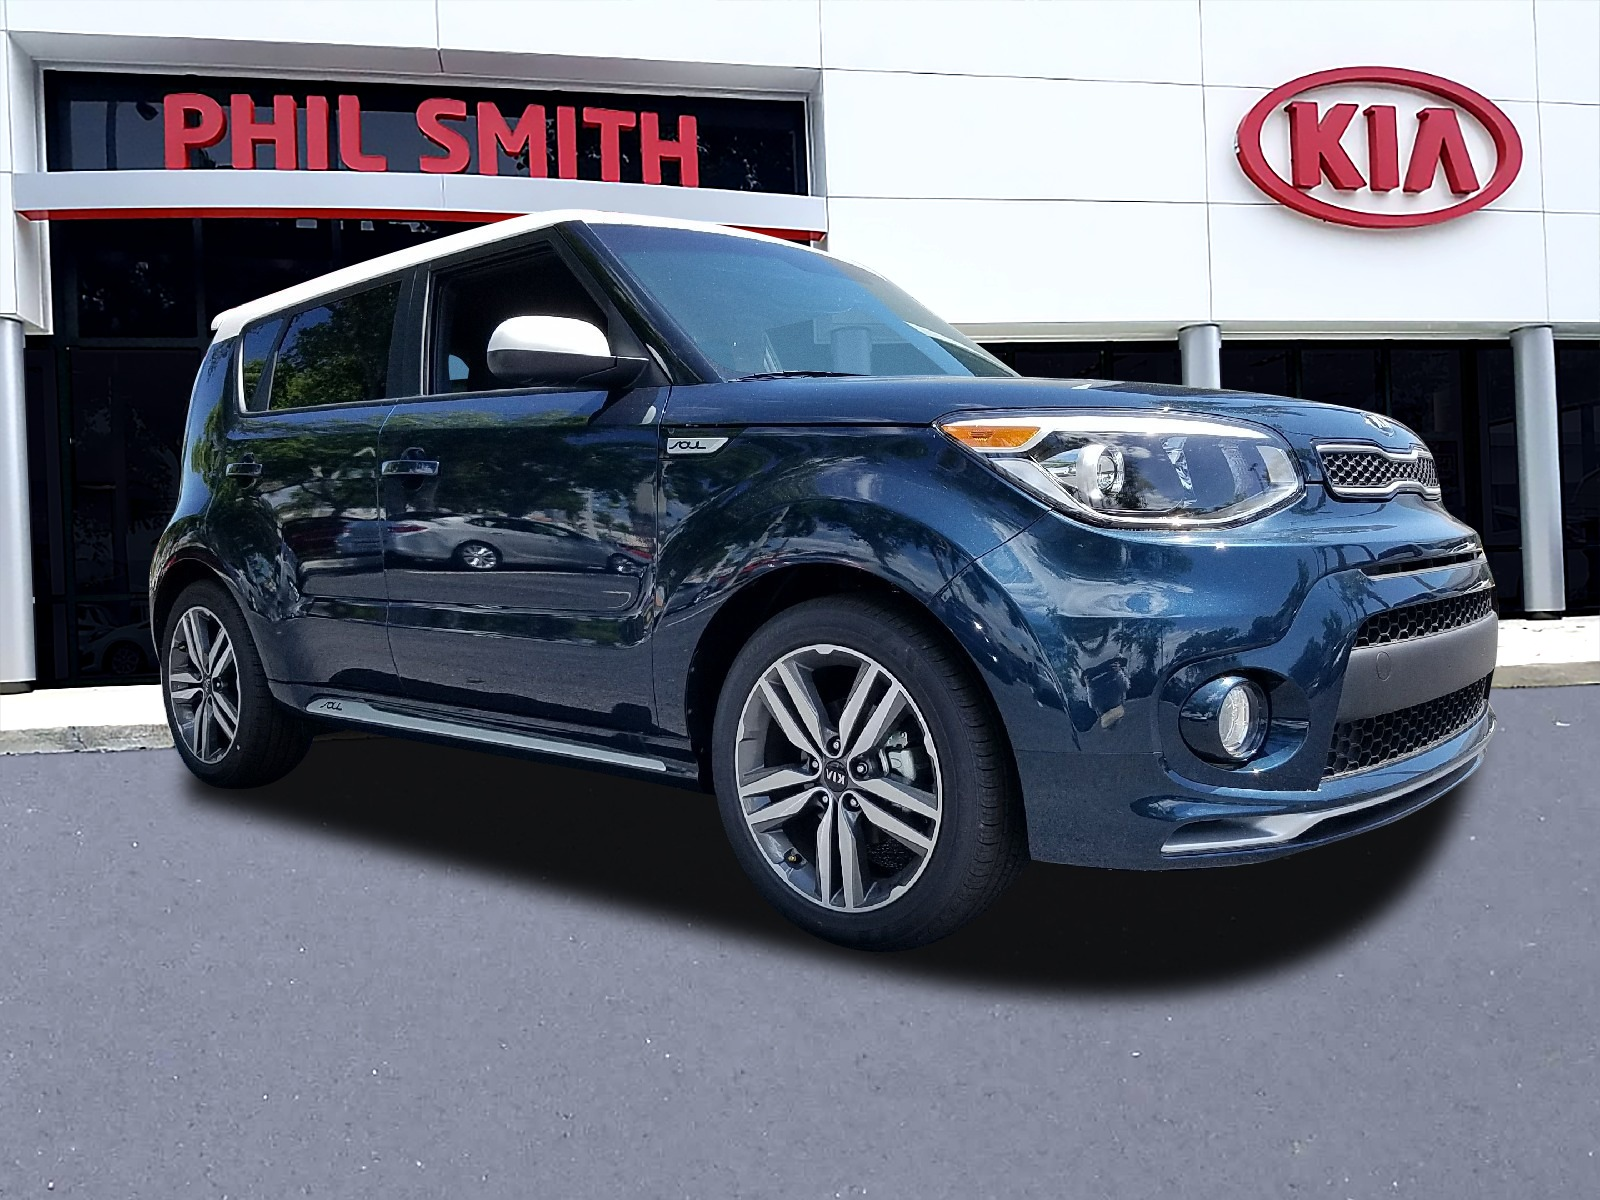 not htm of new beach fl kia fort west delray palm sorento serving grieco